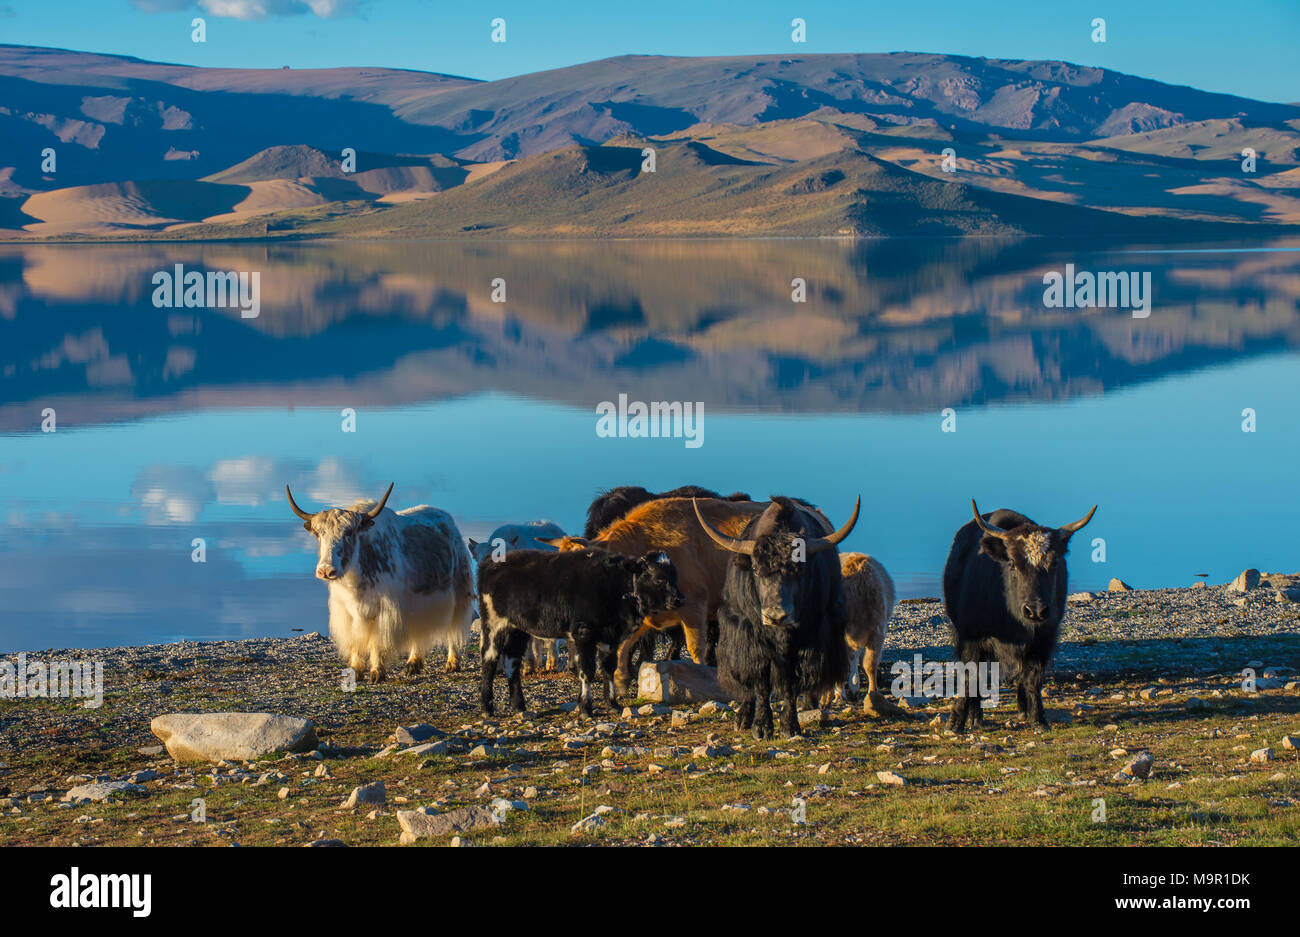 Flock of yaks (Bos grunniens) on the banks of Black lake, Mongolia Stock Photo